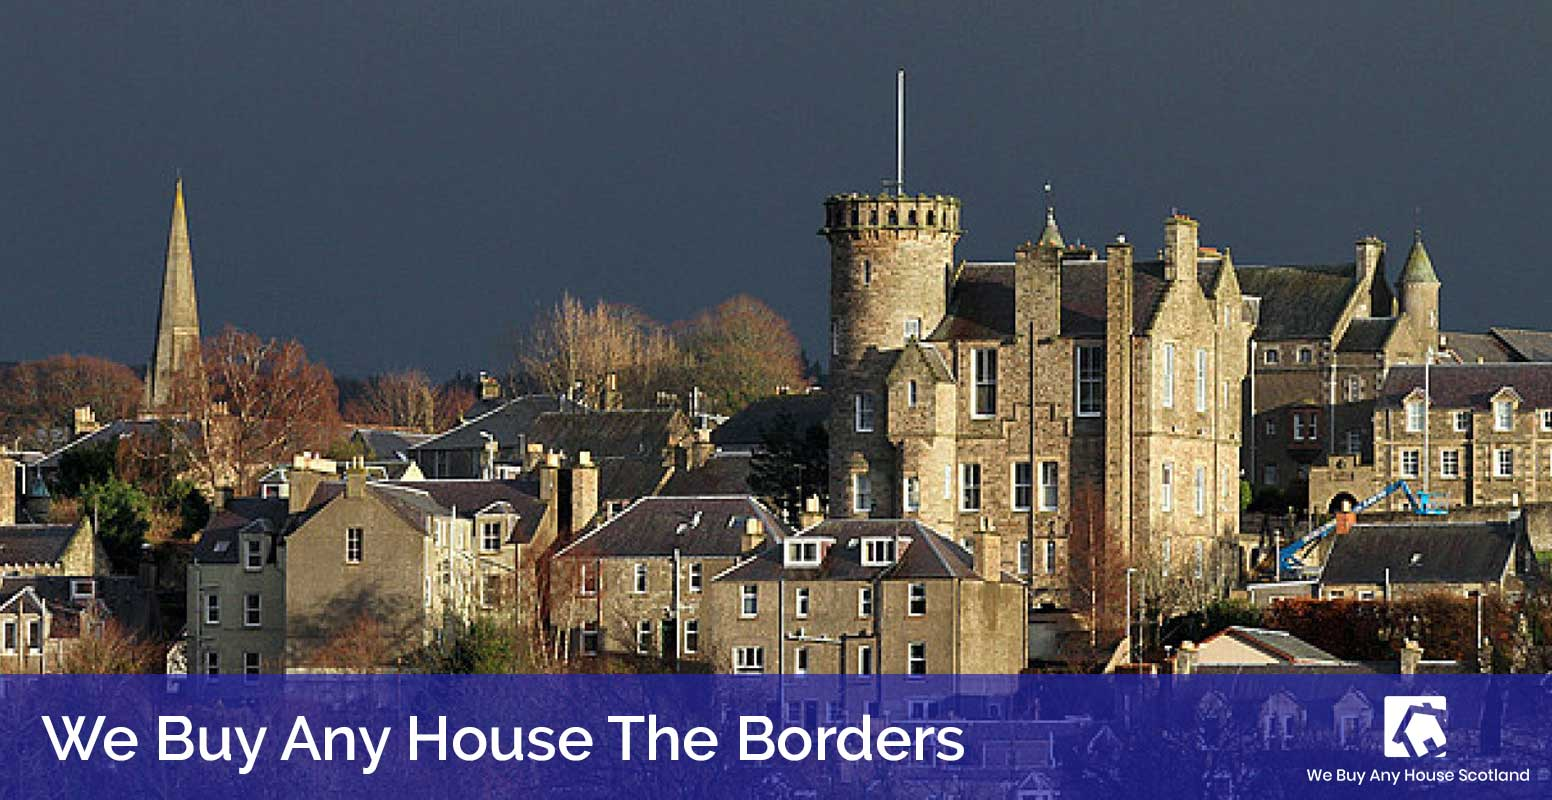 We Buy Any House The Borders